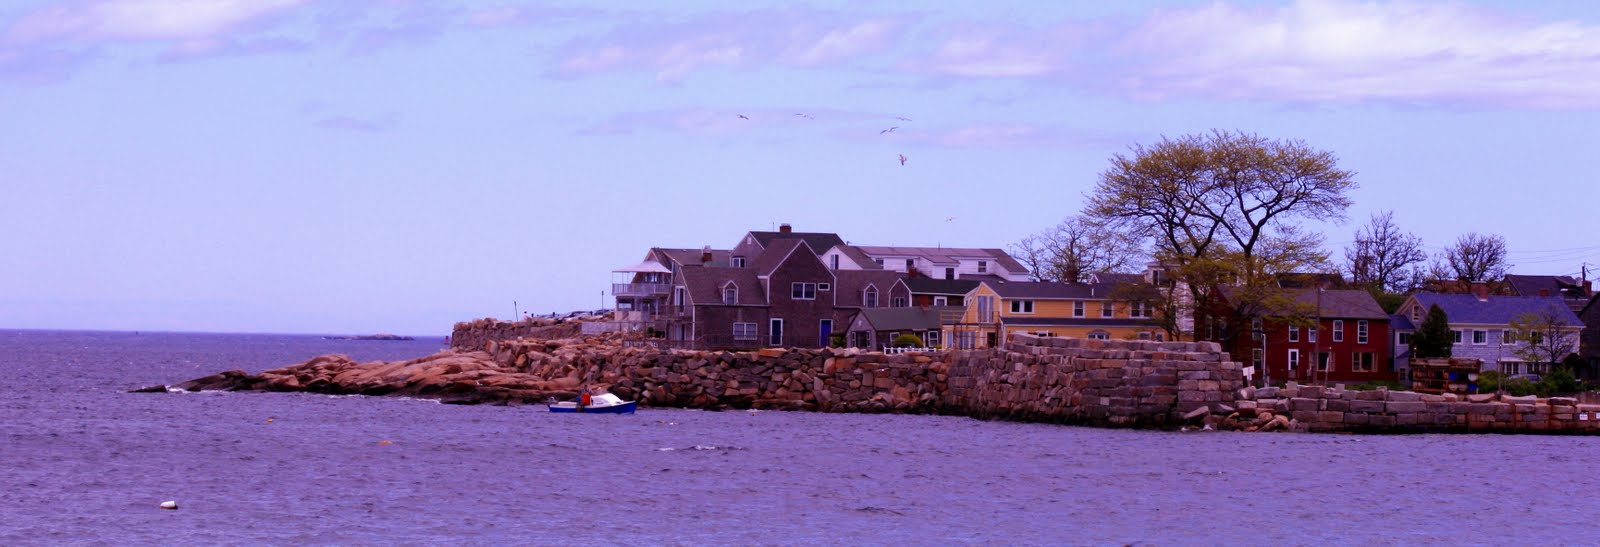 Here are some pics that I took on Cape Ann this weekend...